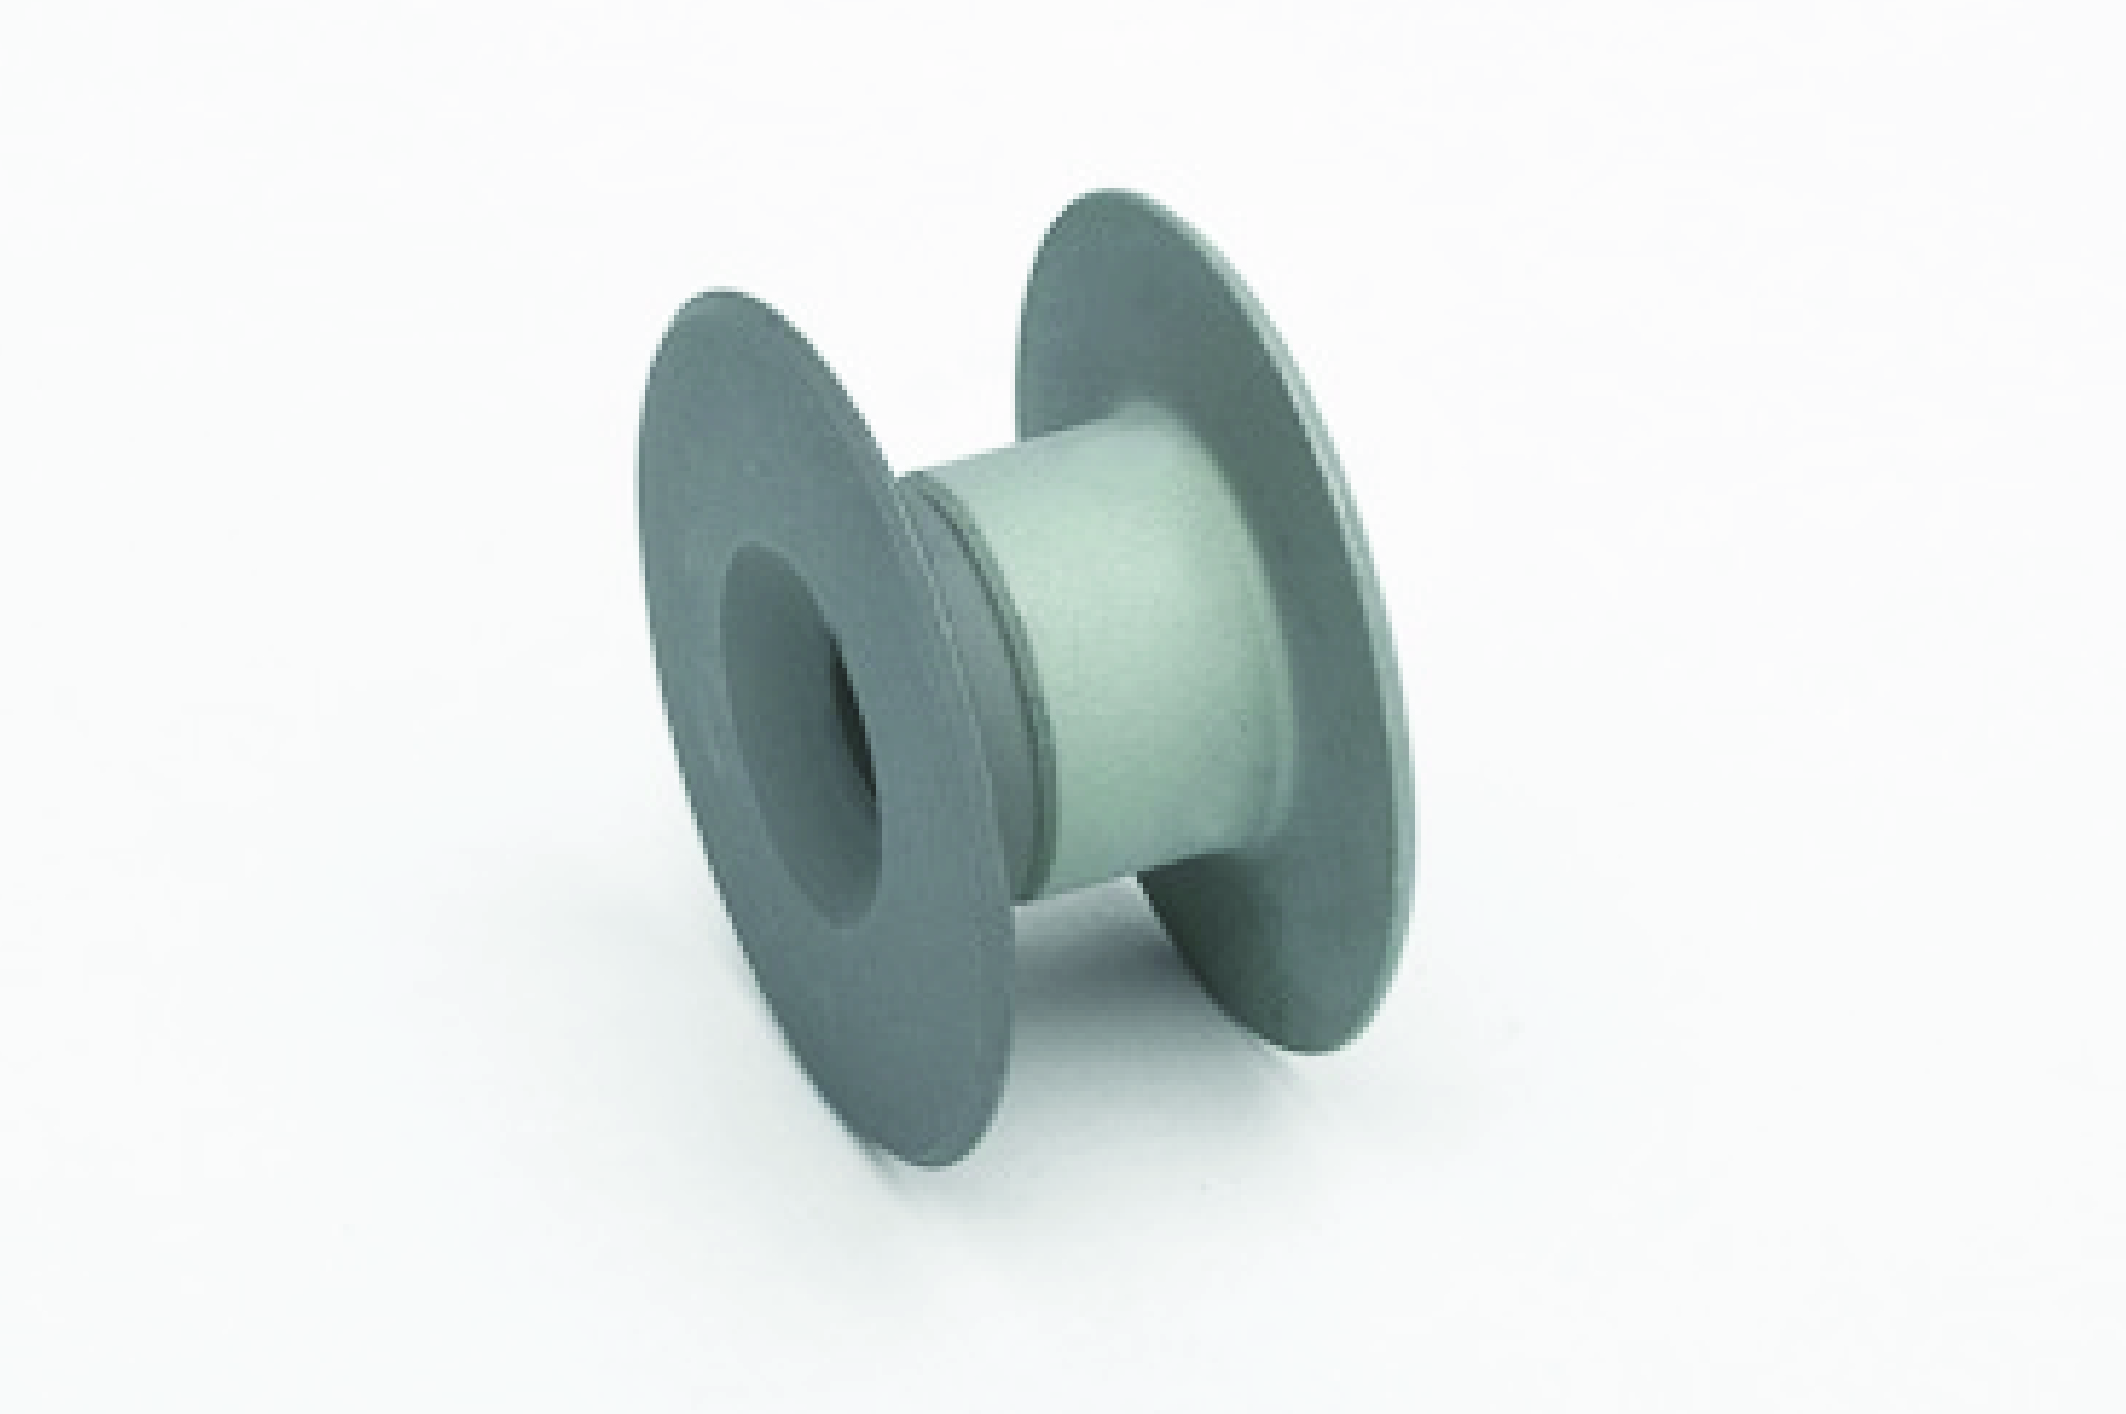 Countersink Spacer Bushing, Through Hole